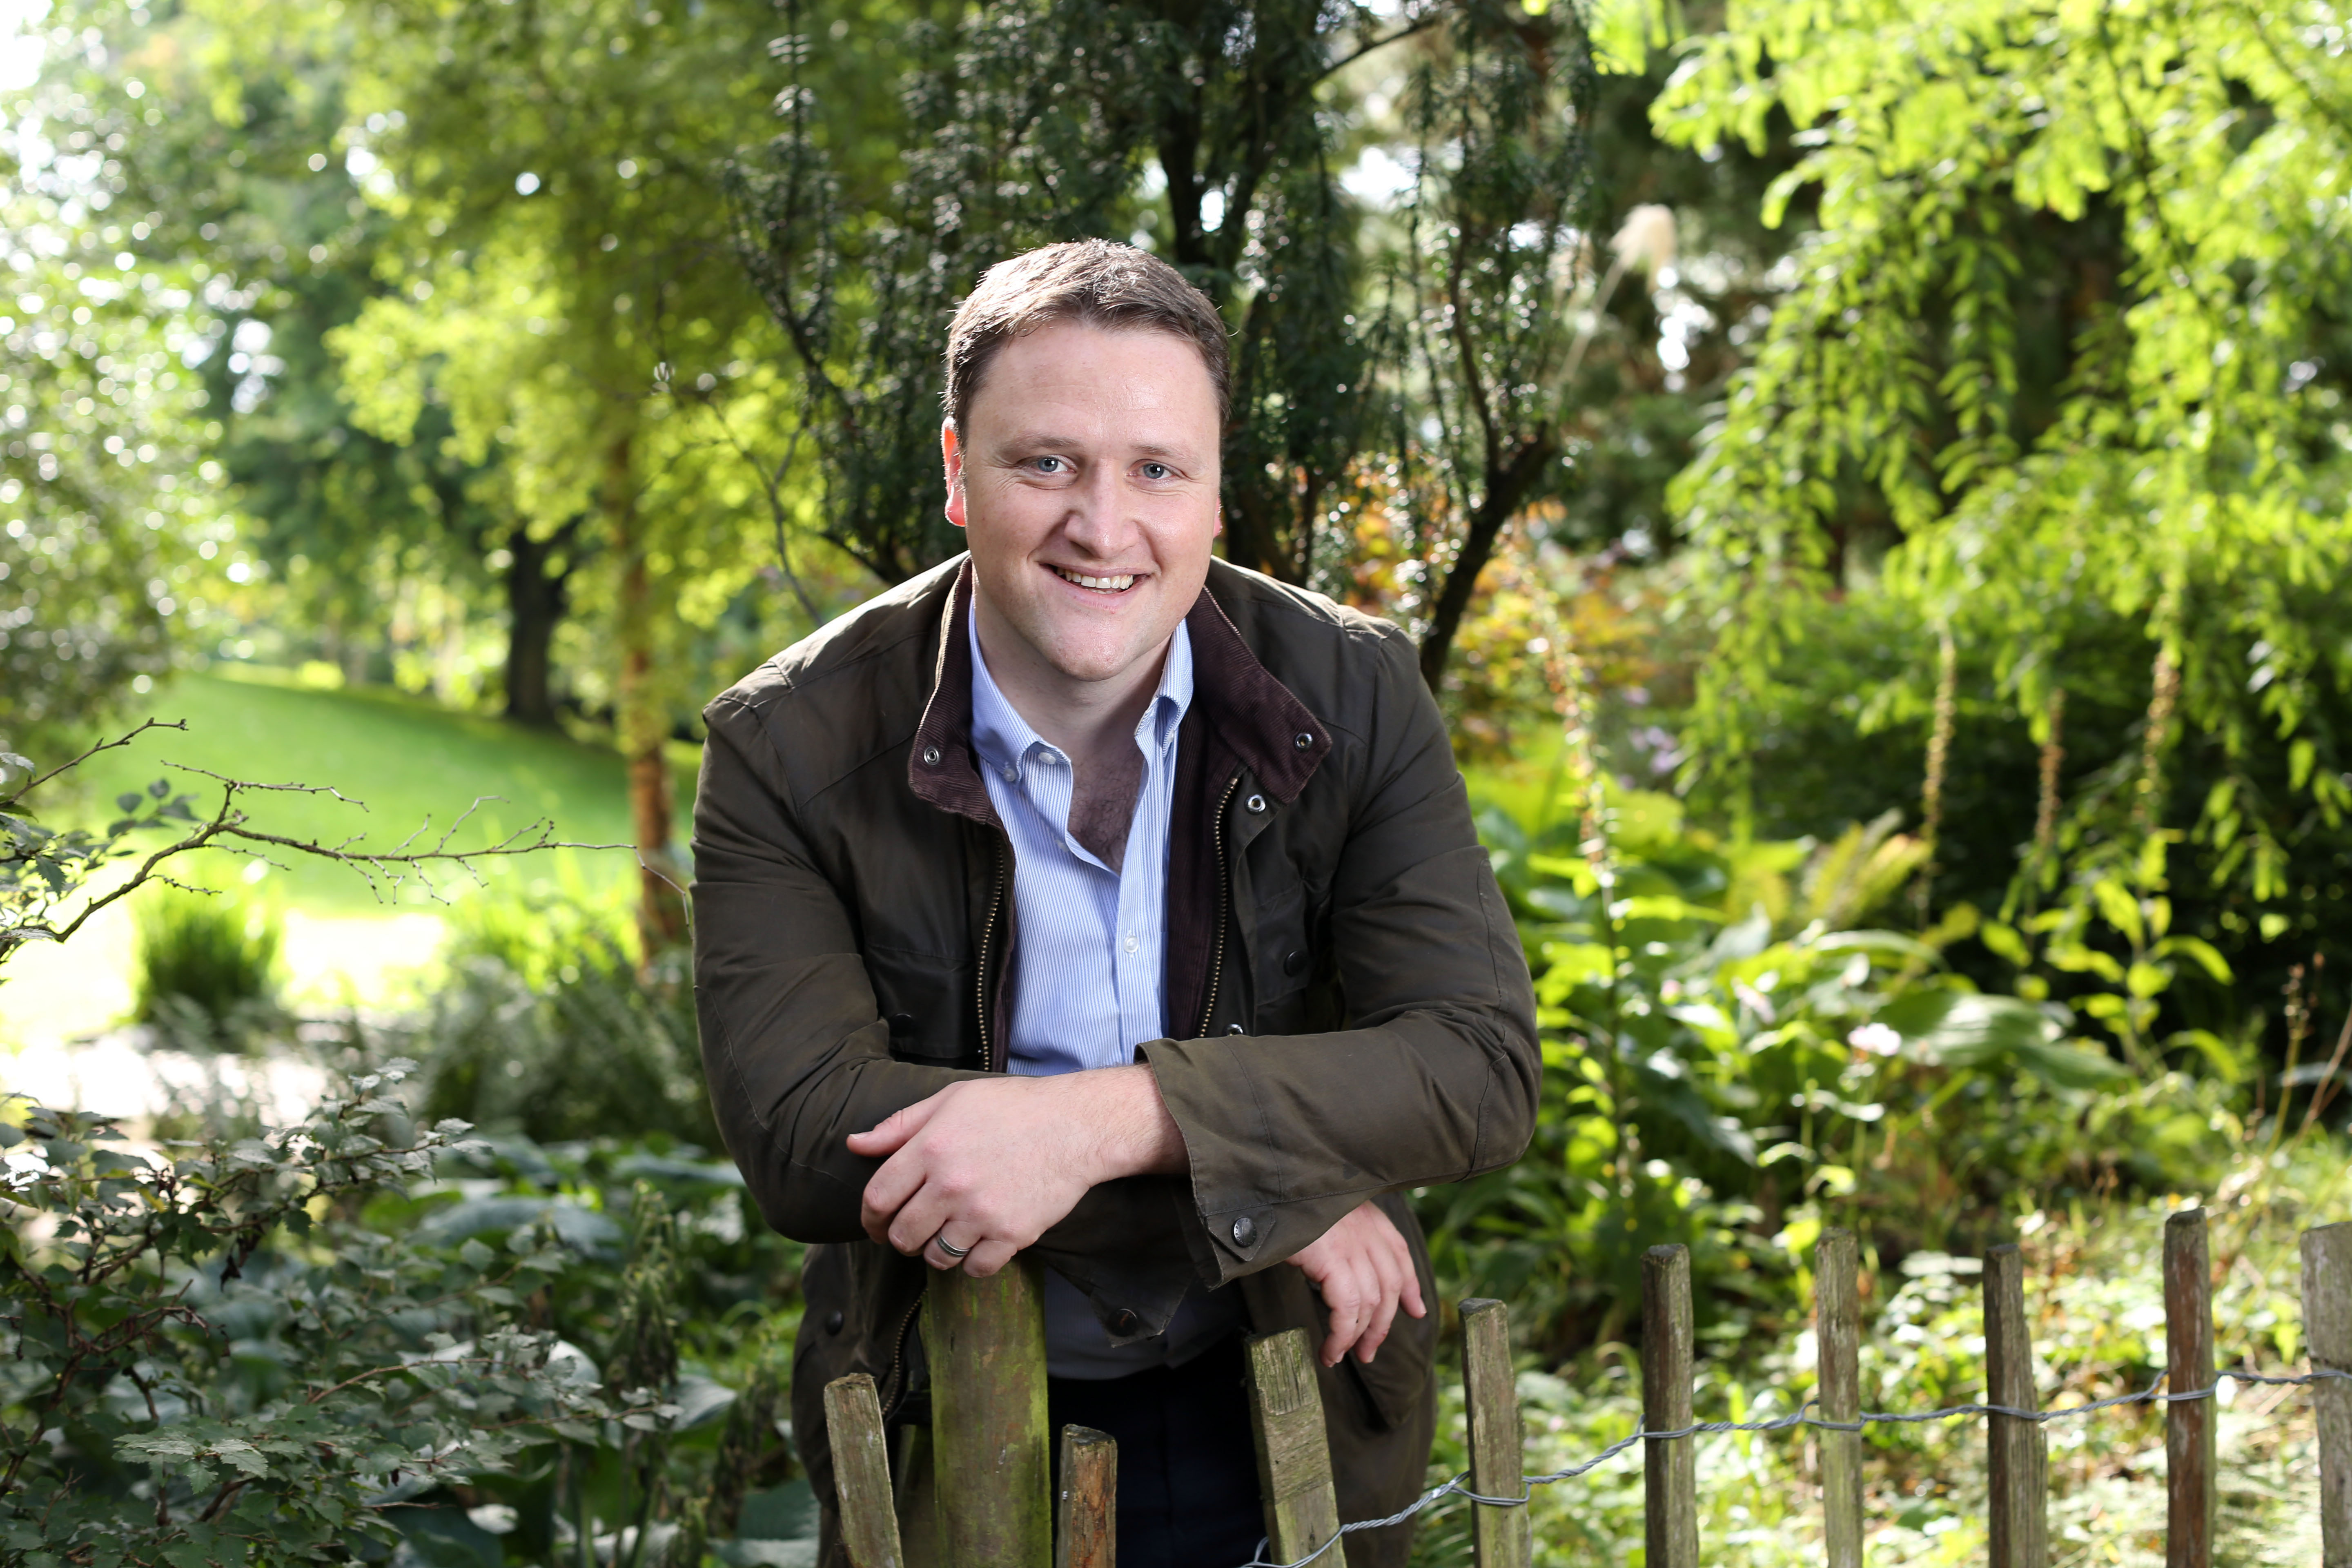 YOU'RE INVITED TO BBC RADIO ULSTER'SGARDENERS'CORNER  AT TIDAL WITH LOUGH NEAGH PARTNERSHIP